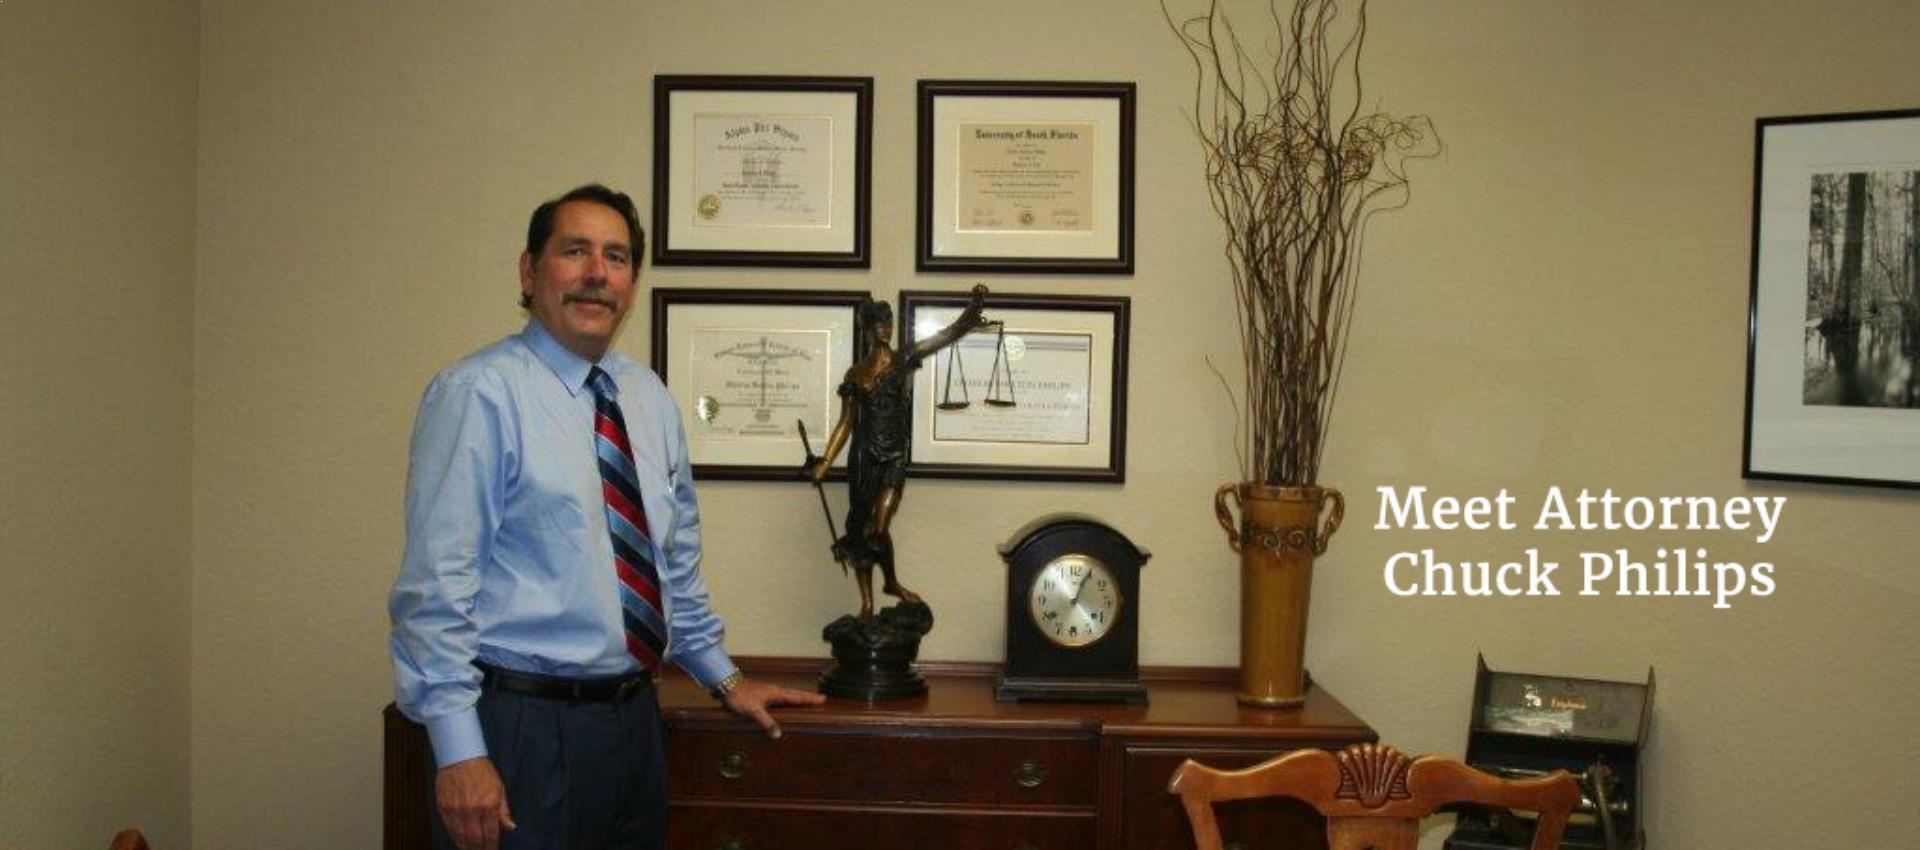 Meet Truck Accident Attorney Chuck Philips